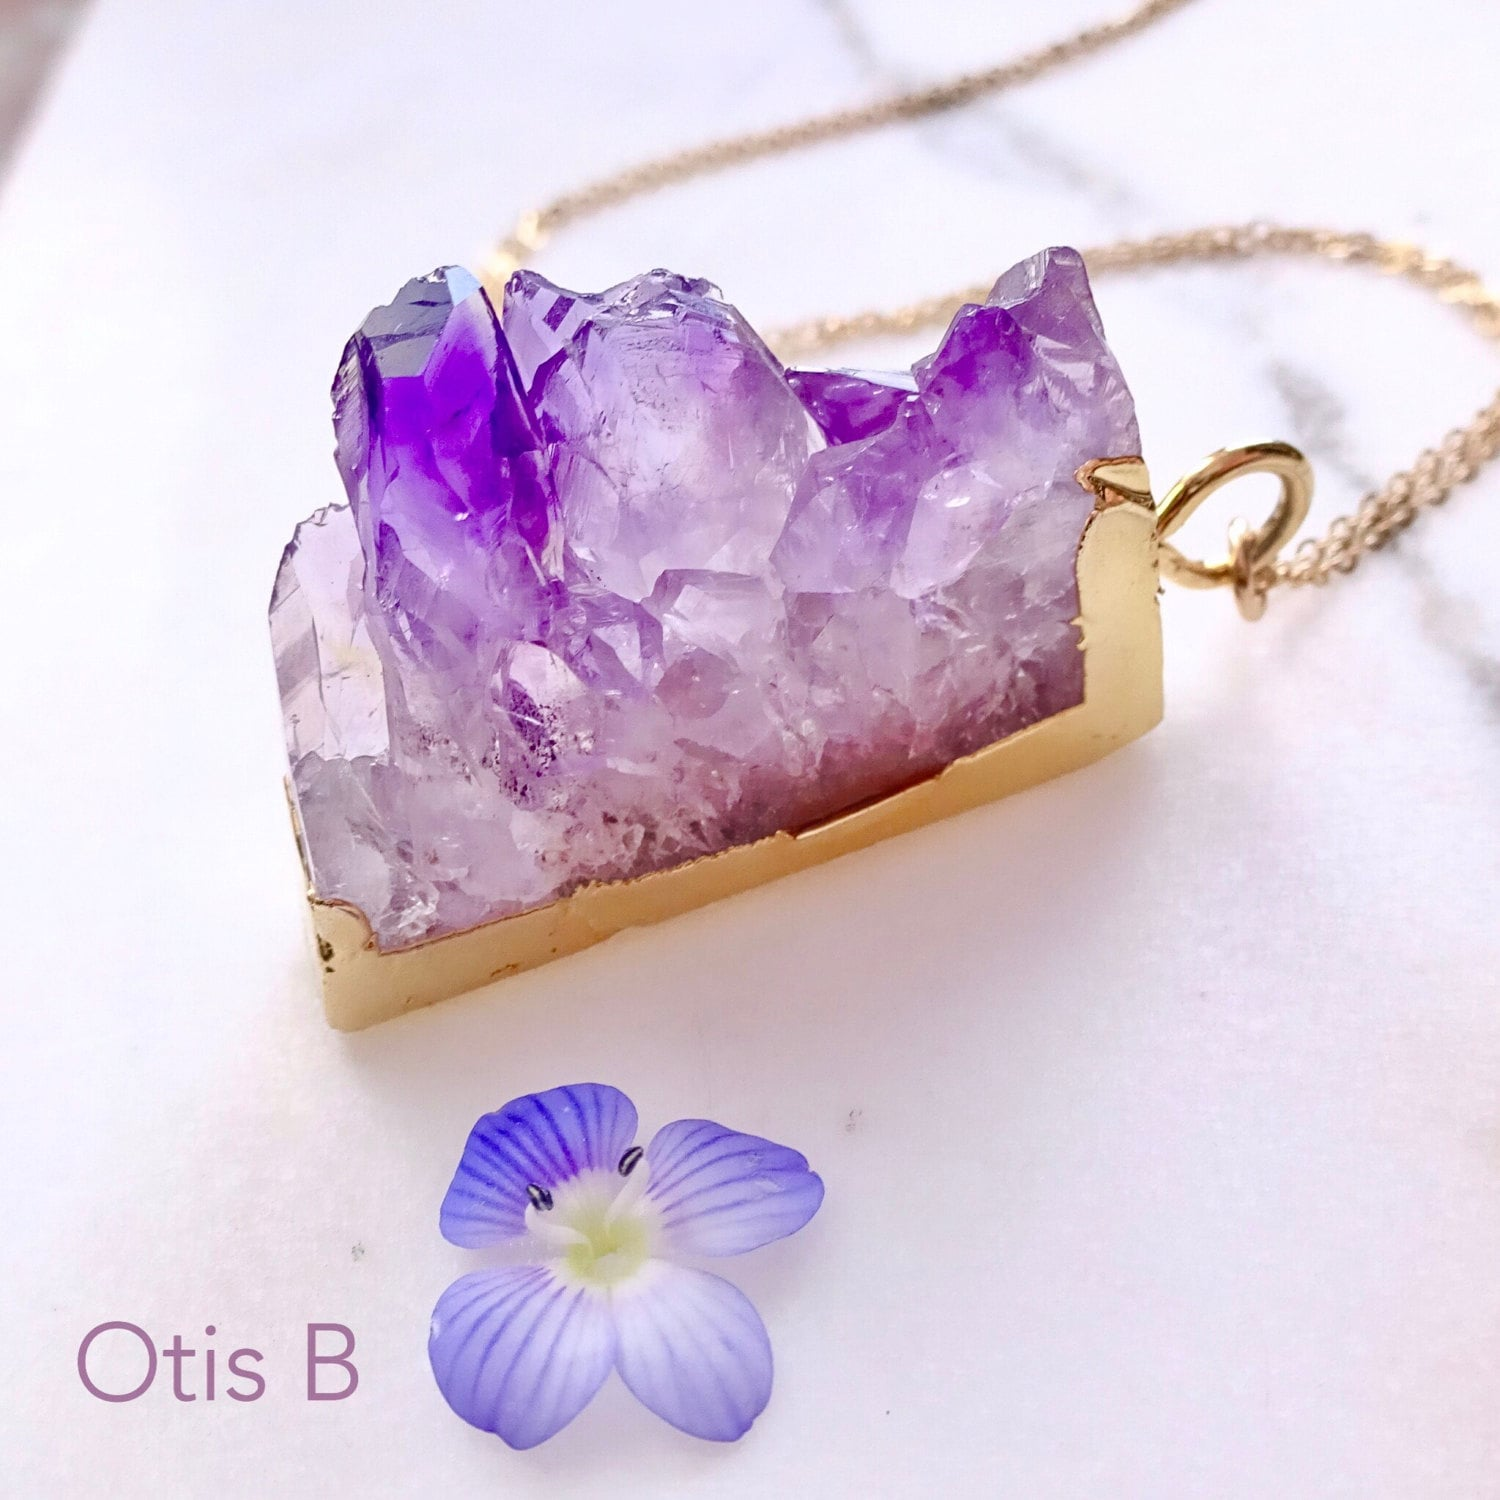 Raw Amethyst slice necklace, Geode, Druzy, Rock formation, February birthstone, Purple amethyst pendant, crystal necklace, Otis B Jewelry